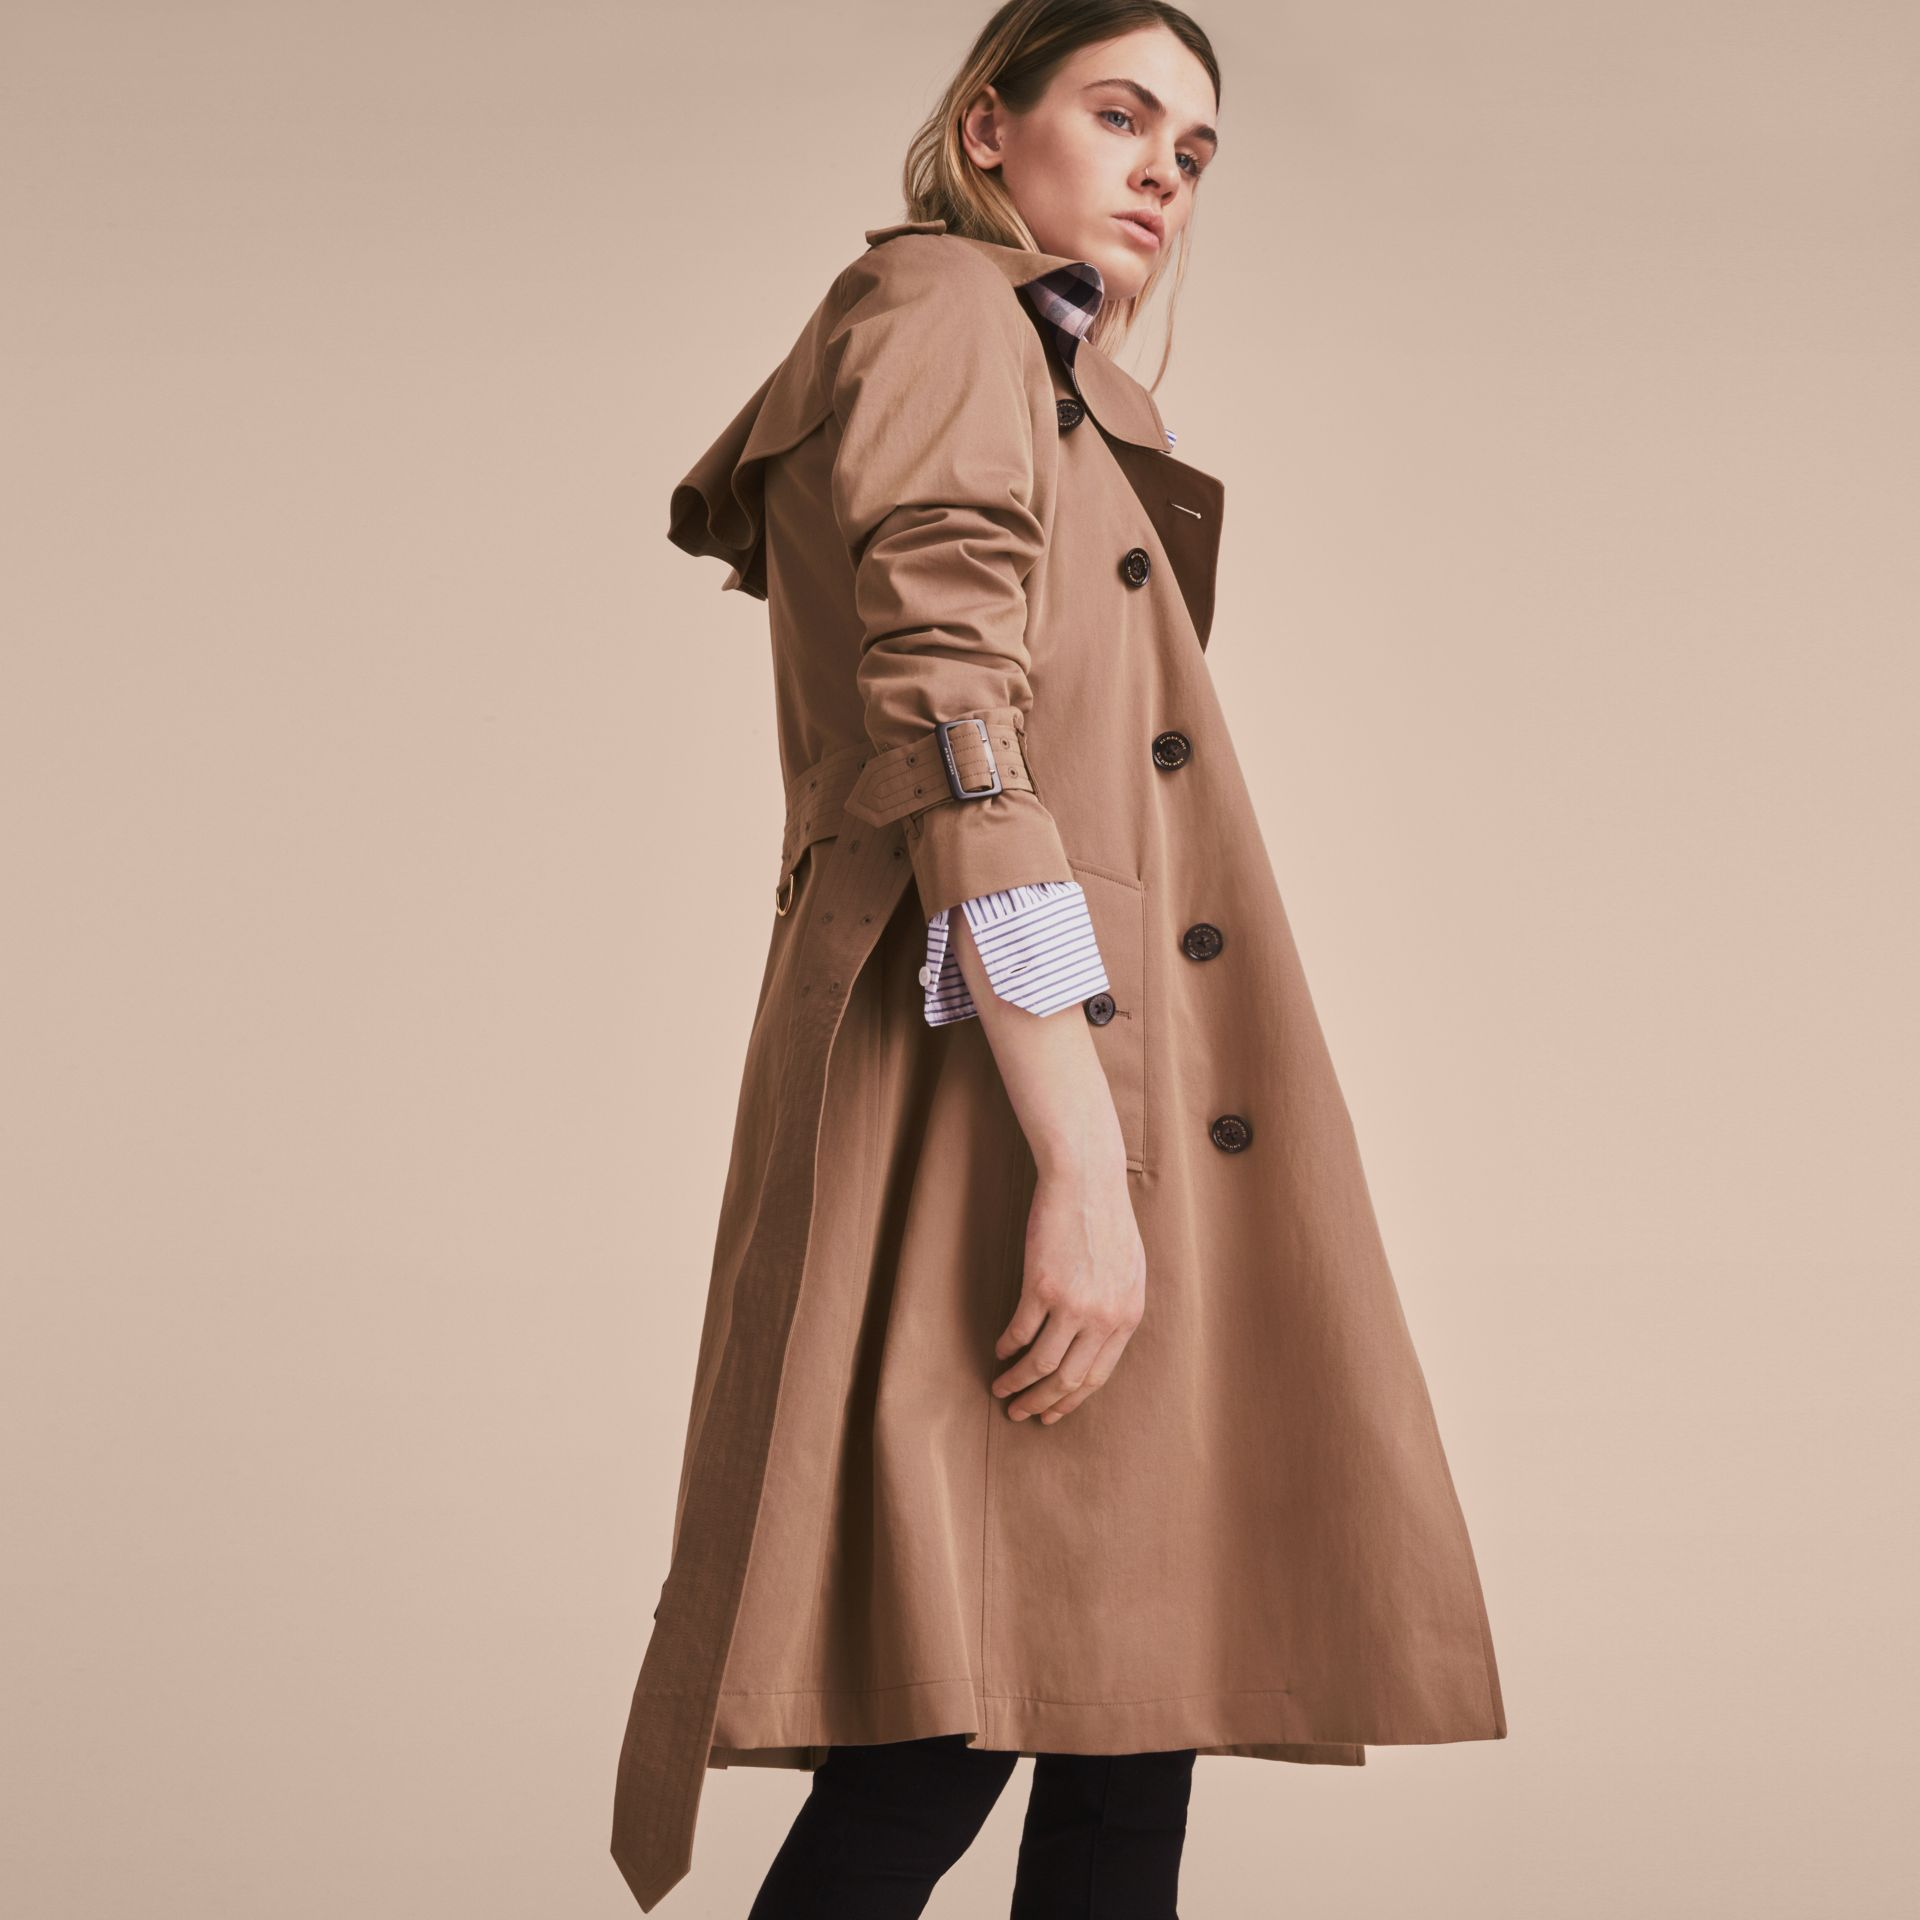 Tropical Gabardine Trench Coat with Ruffle Detail in Taupe - Women | Burberry - gallery image 7